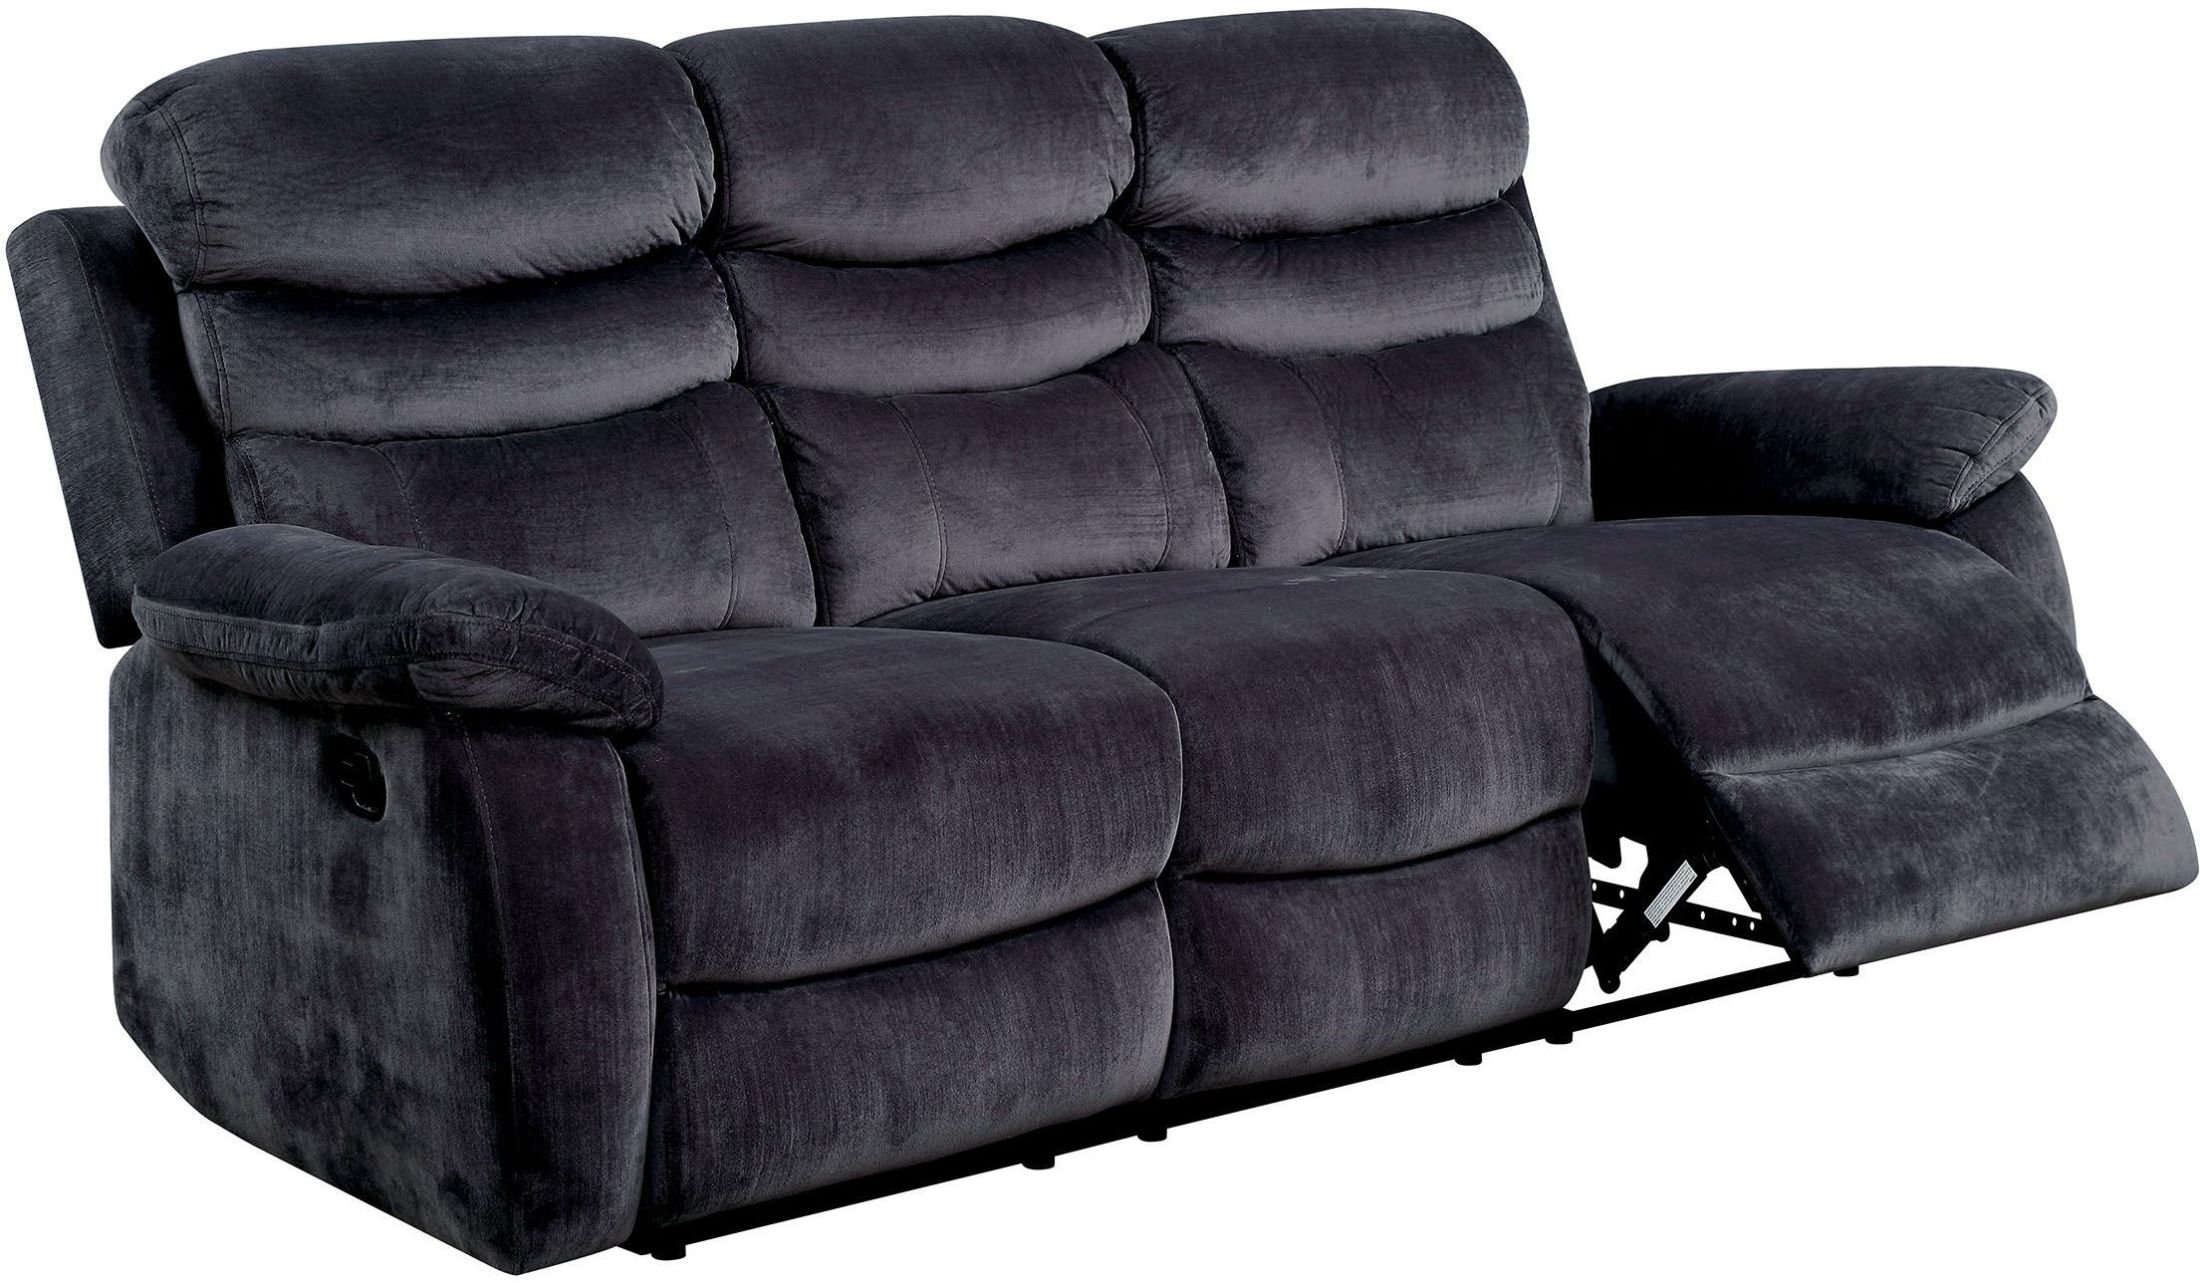 Furniture of America CM6238-SF Leigh Reclining Furniture, Gray by Furniture of America (Image #1)